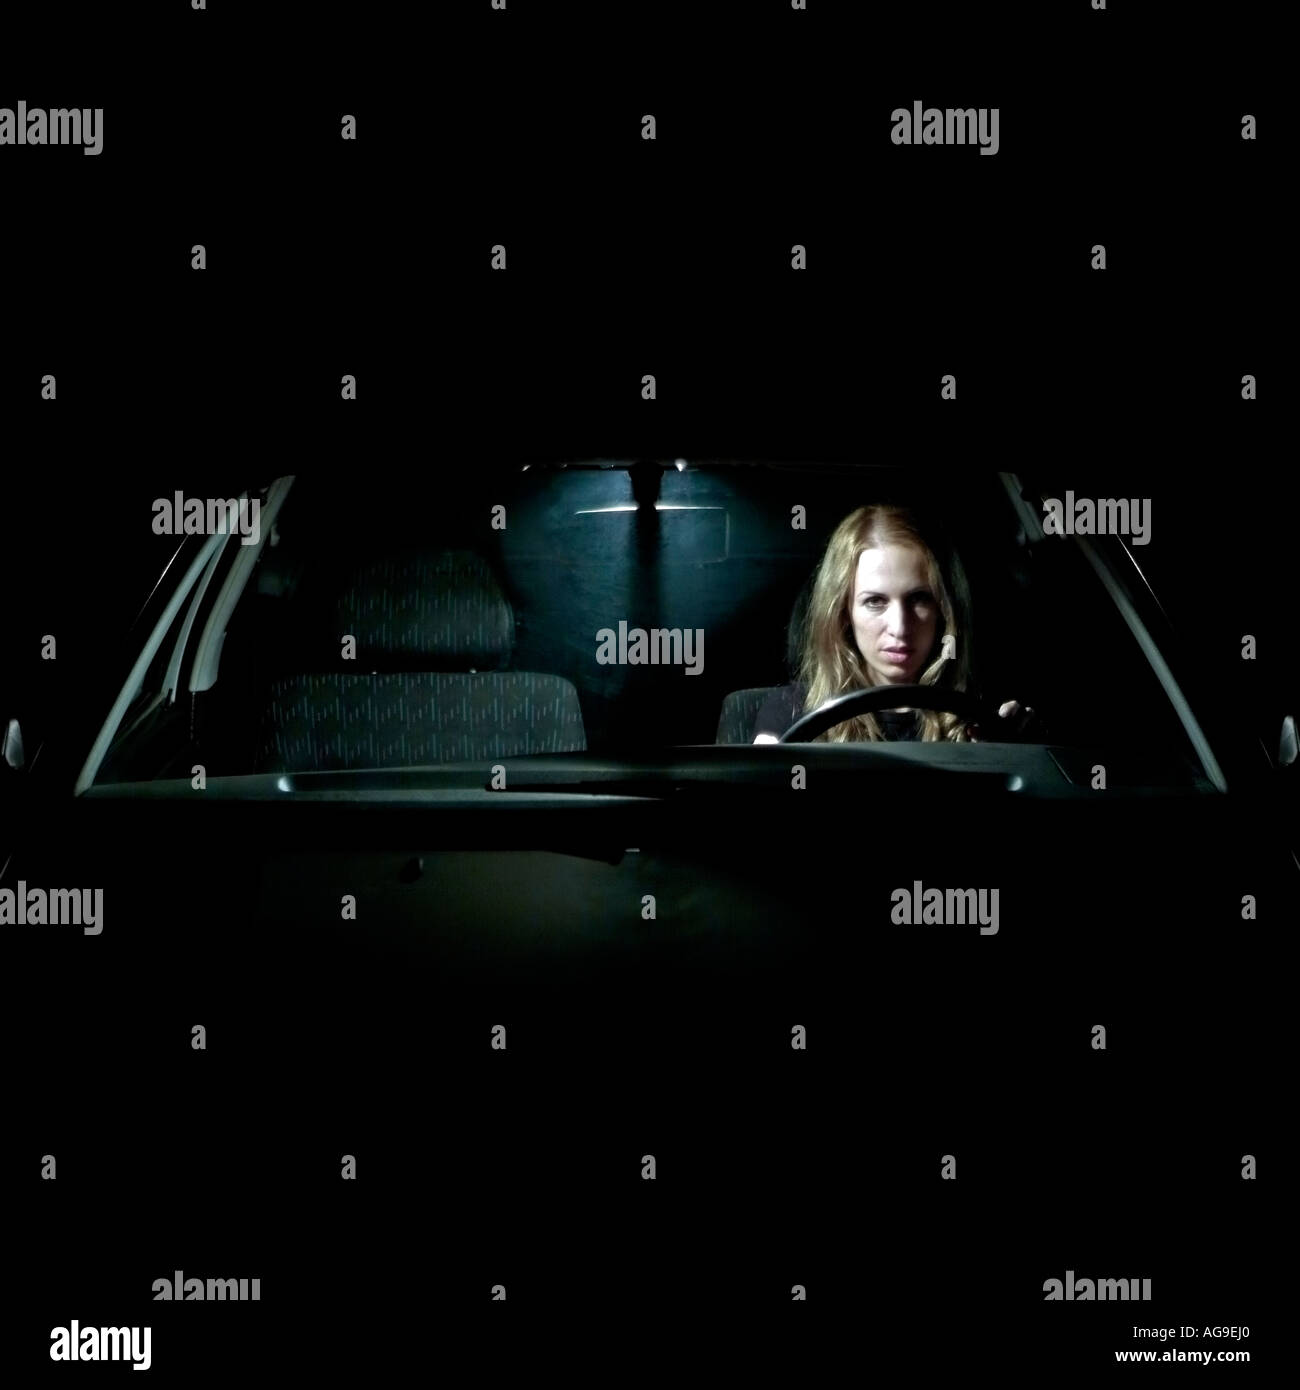 Caucasian Female Sat Alone In a Car at Night Illuminated by the Interior Light - Stock Image